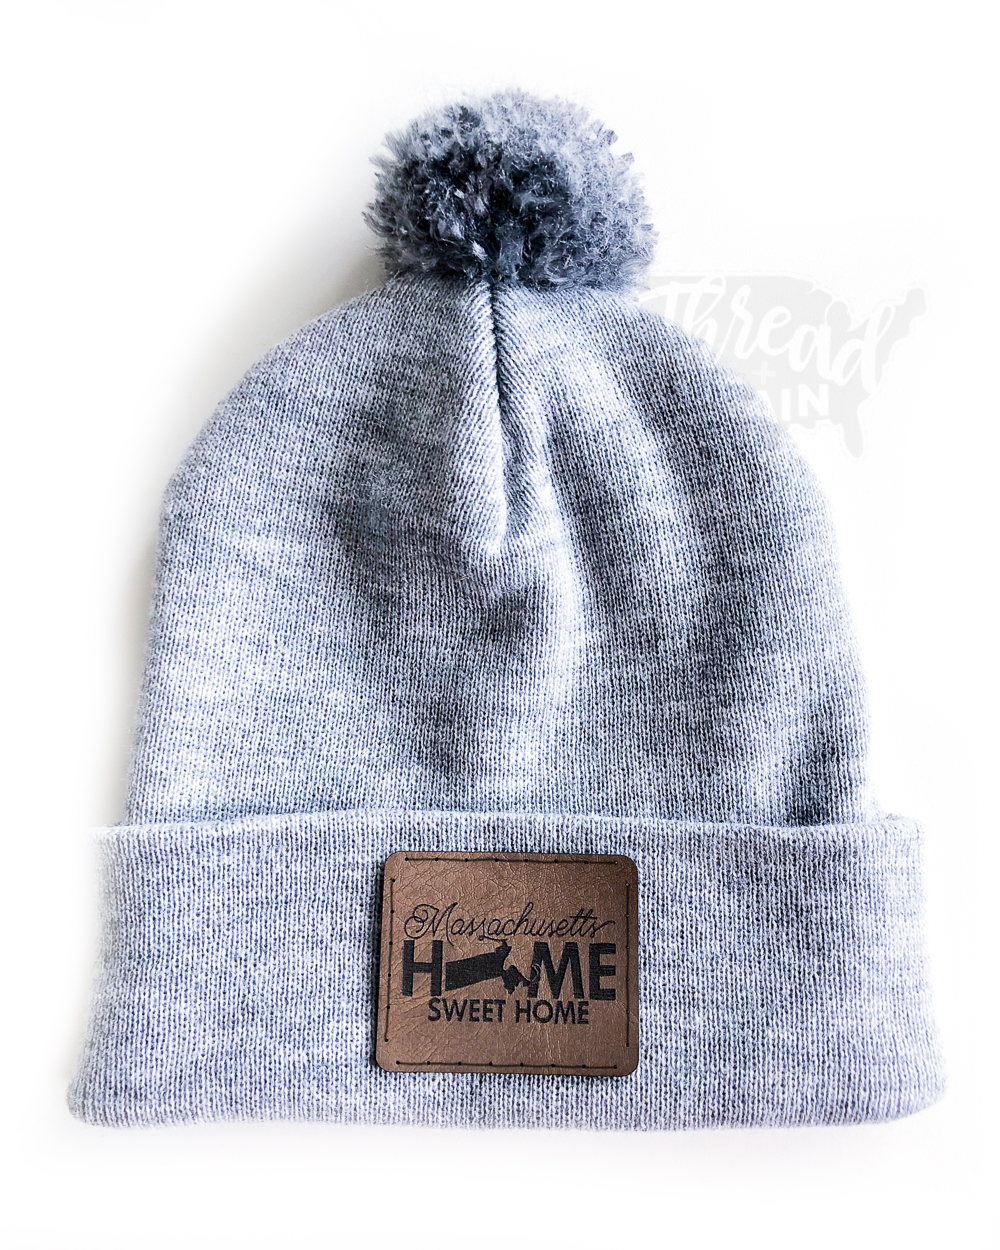 Massachusetts :: Home Sweet Home PATCHED HAT